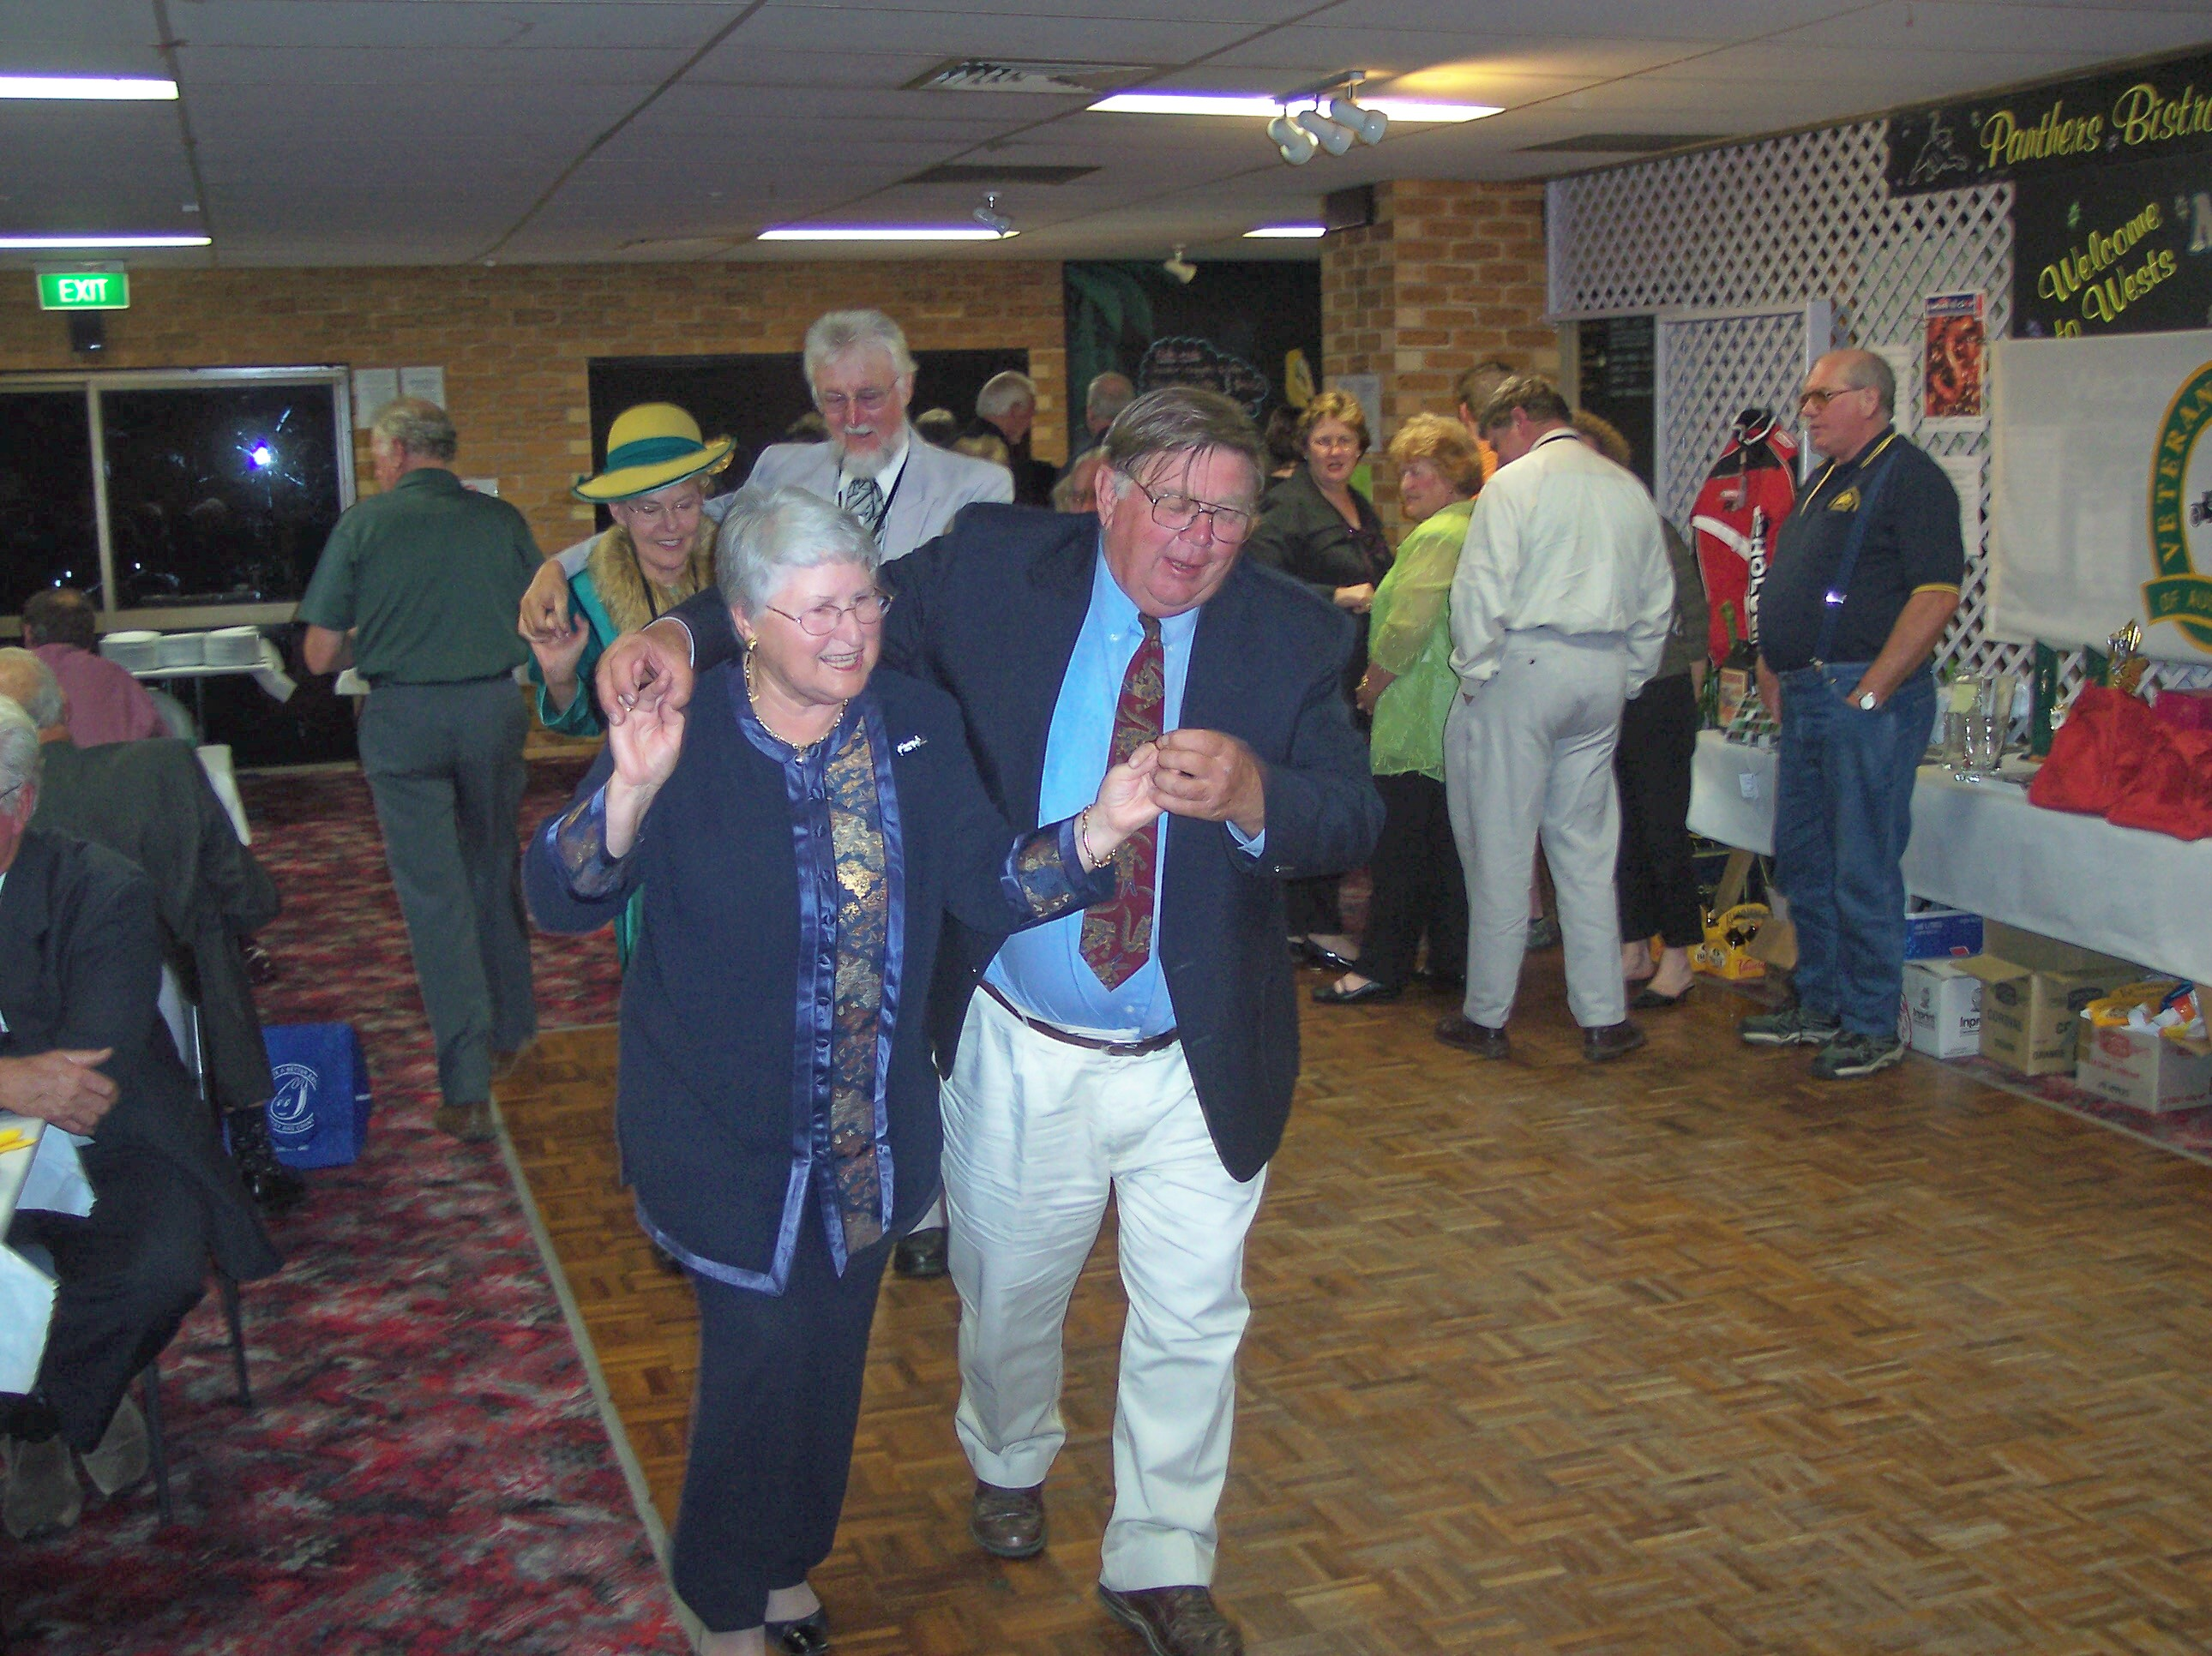 OLD TIMERS DANCE MCFEETERS